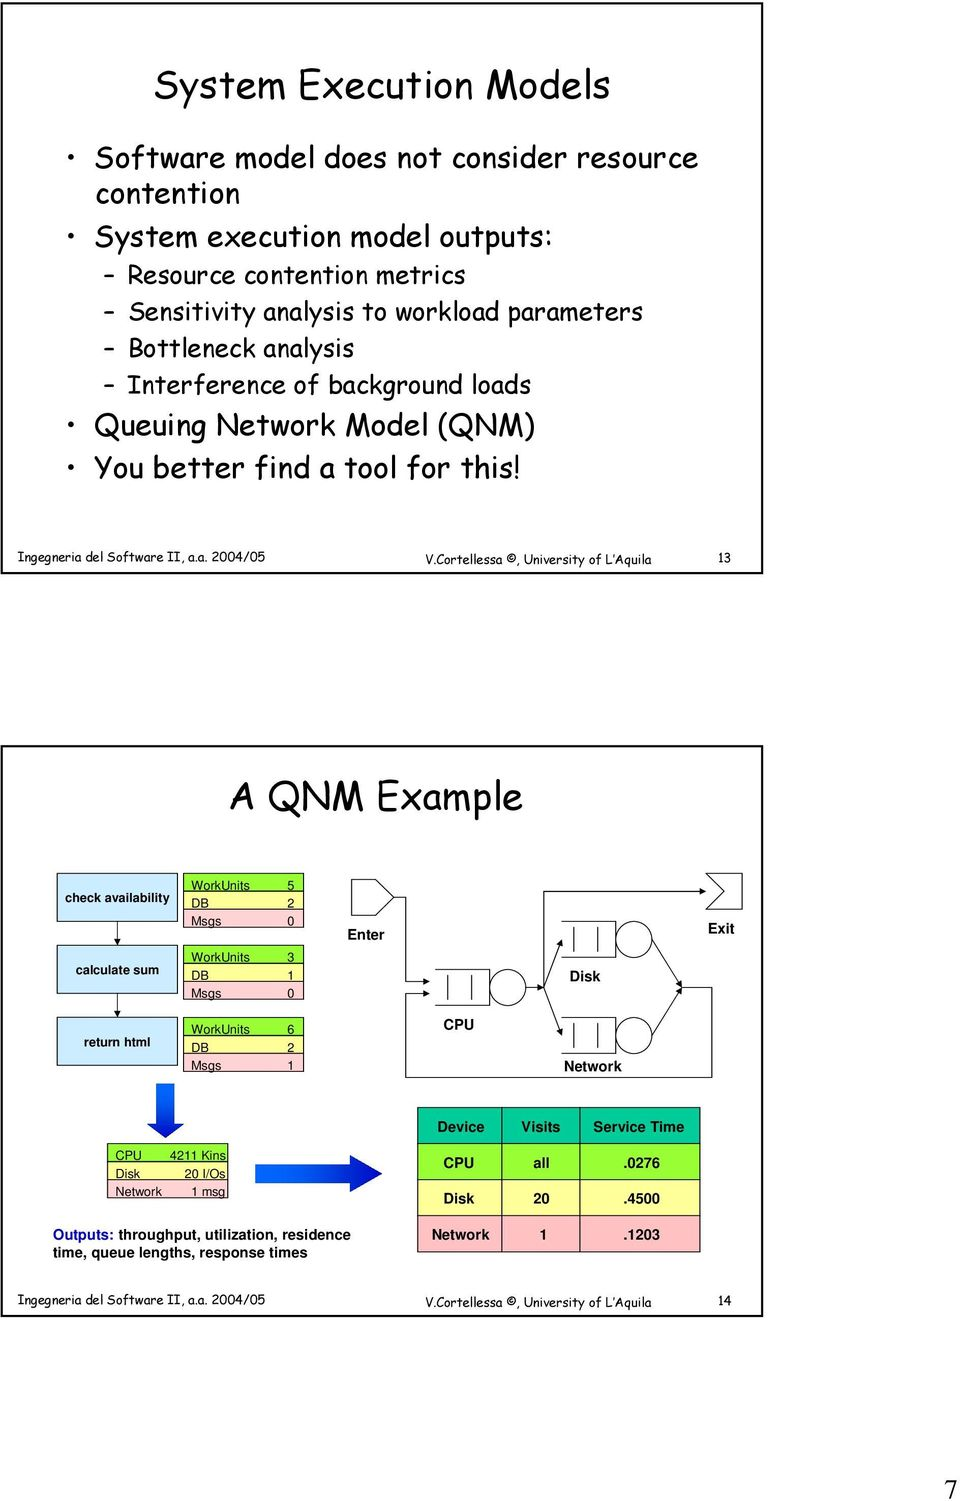 13 A QNM Example check availability WorkUnits DB Msgs 5 2 0 Enter Exit calculate sum WorkUnits DB Msgs 3 1 0 Disk return html WorkUnits DB Msgs 6 2 1 CPU Network